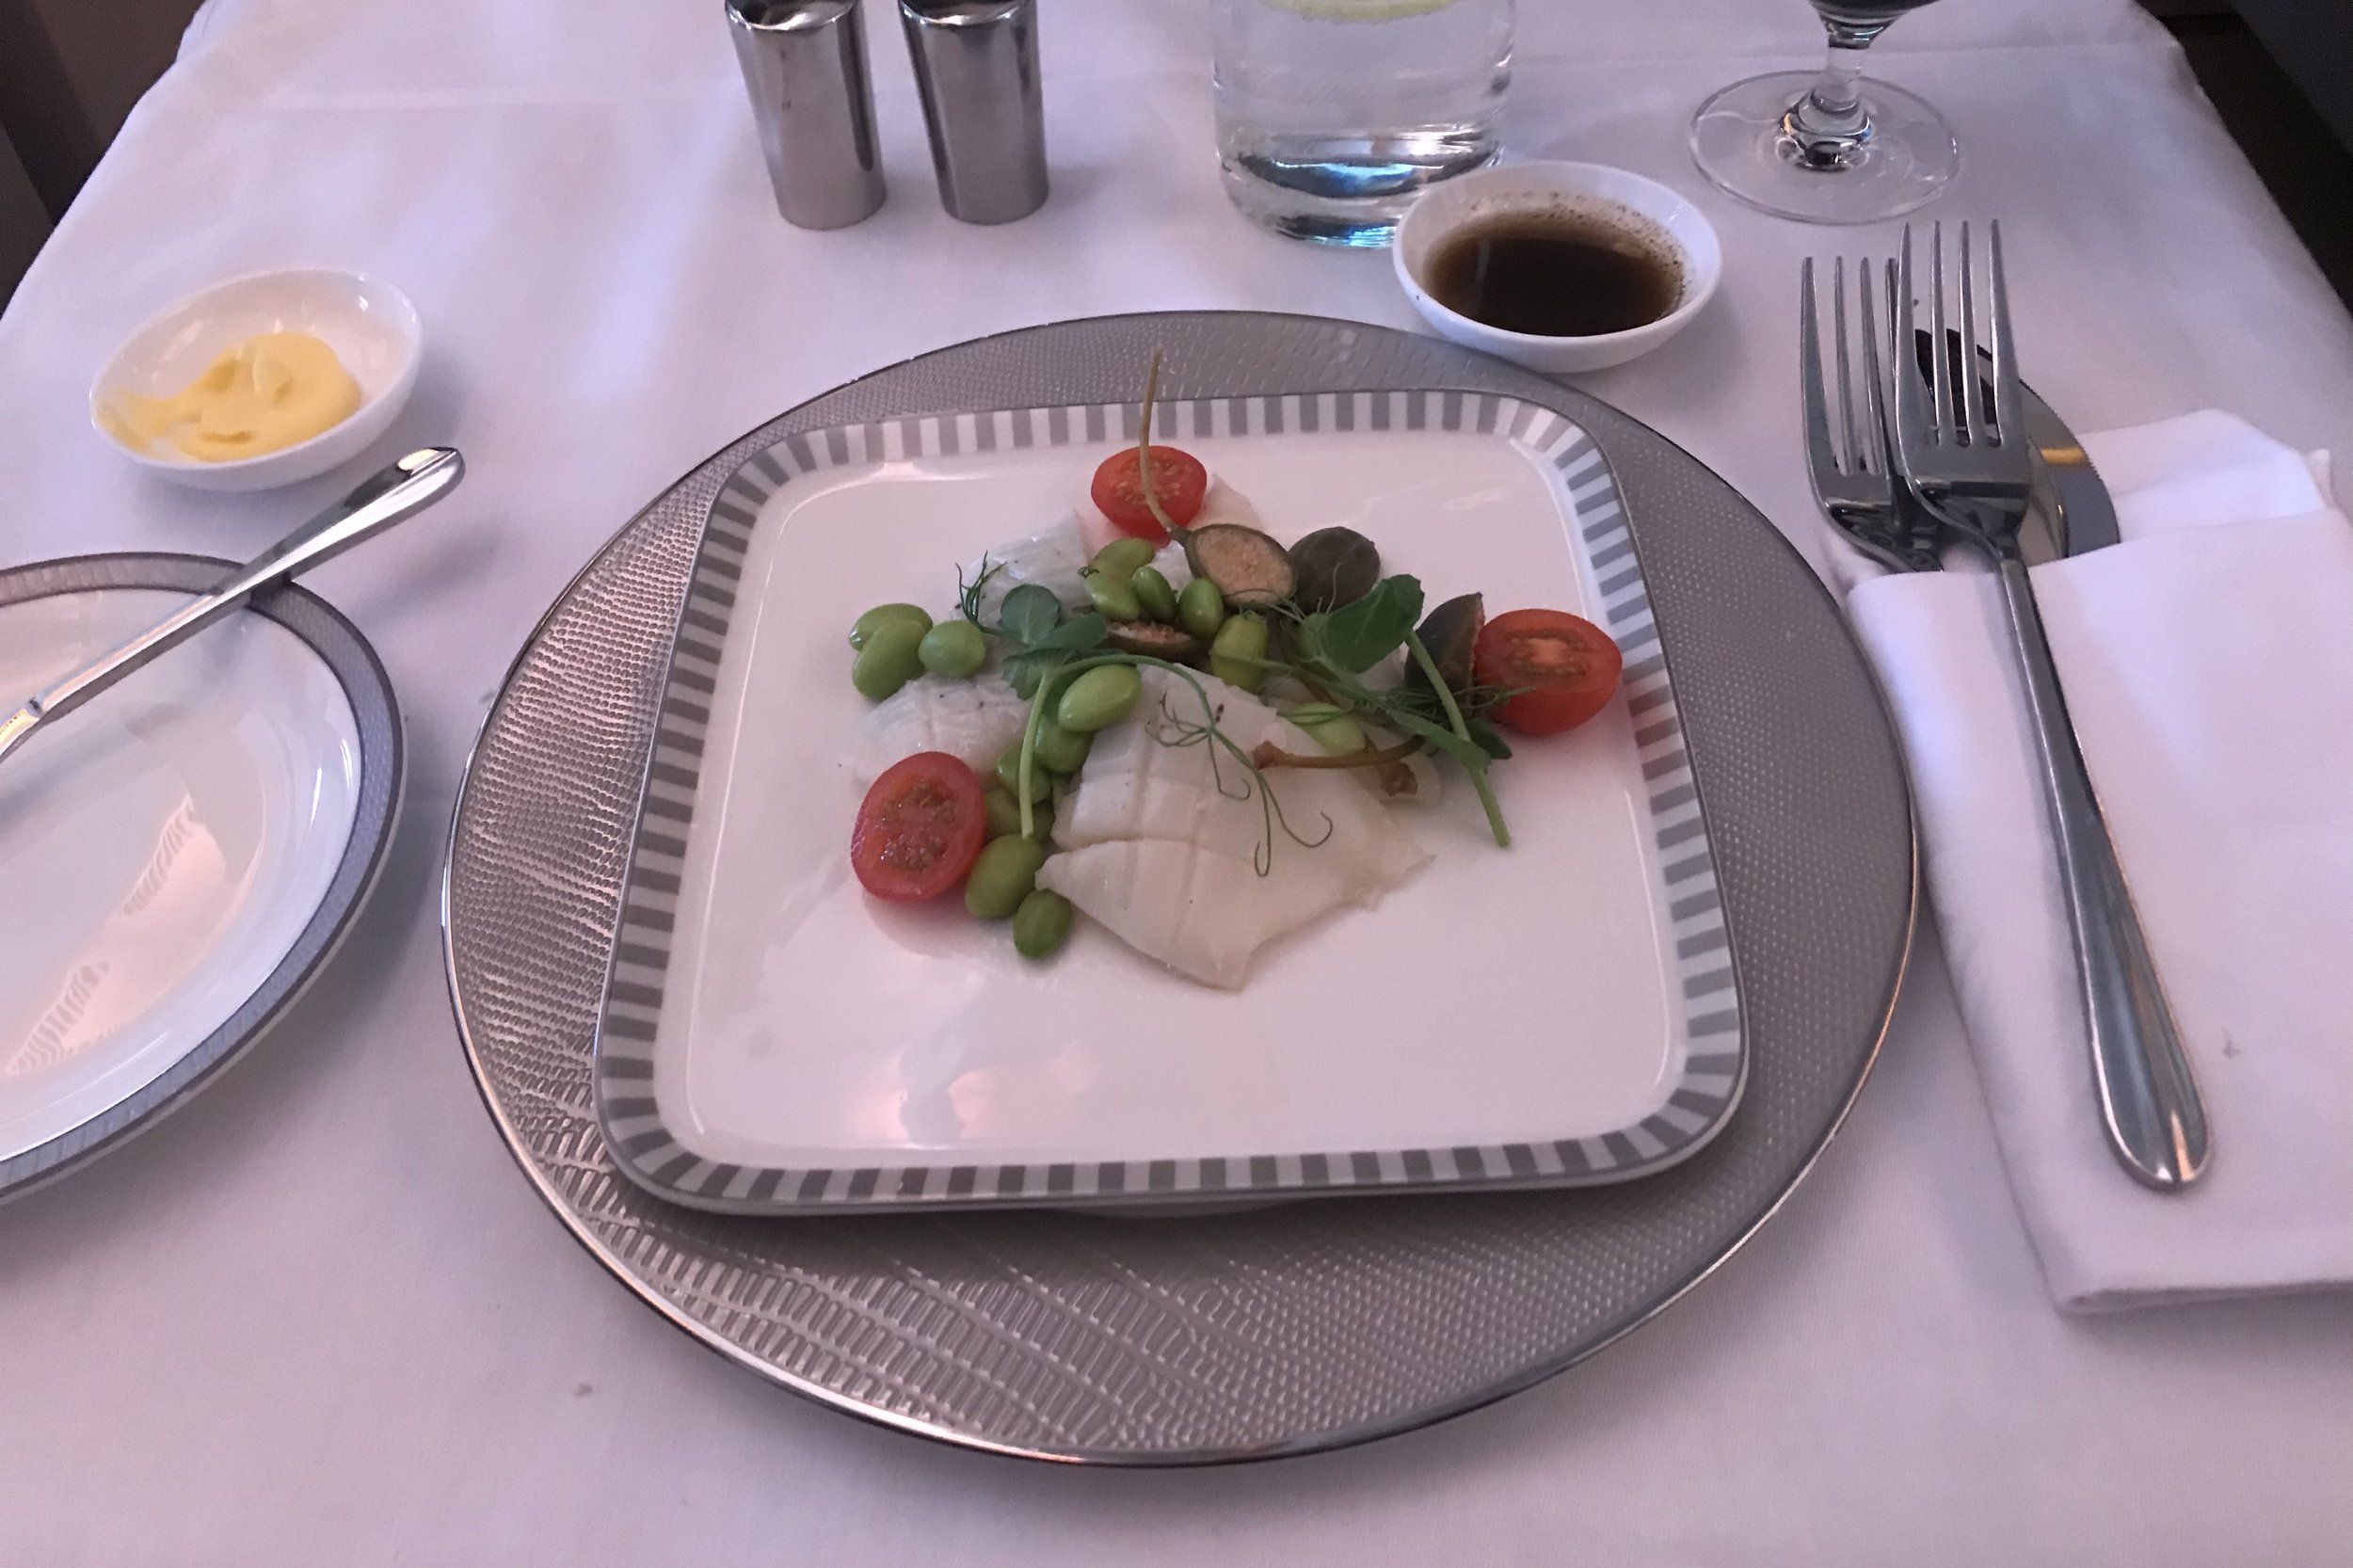 Singapore Airlines Suites Class – Chilled seafood appetizer